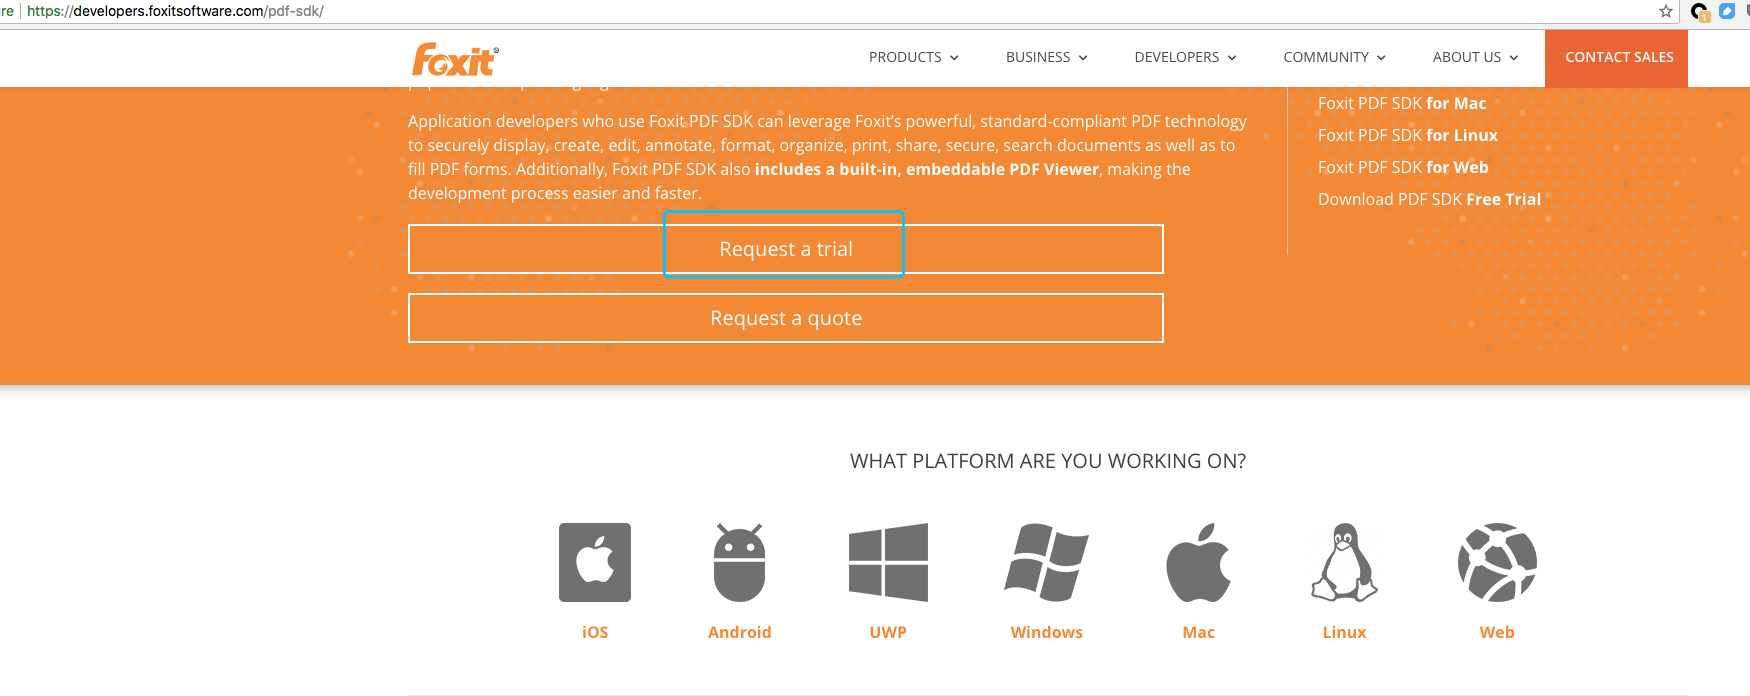 How to request the free trial ? · Issue #2 · foxitsoftware